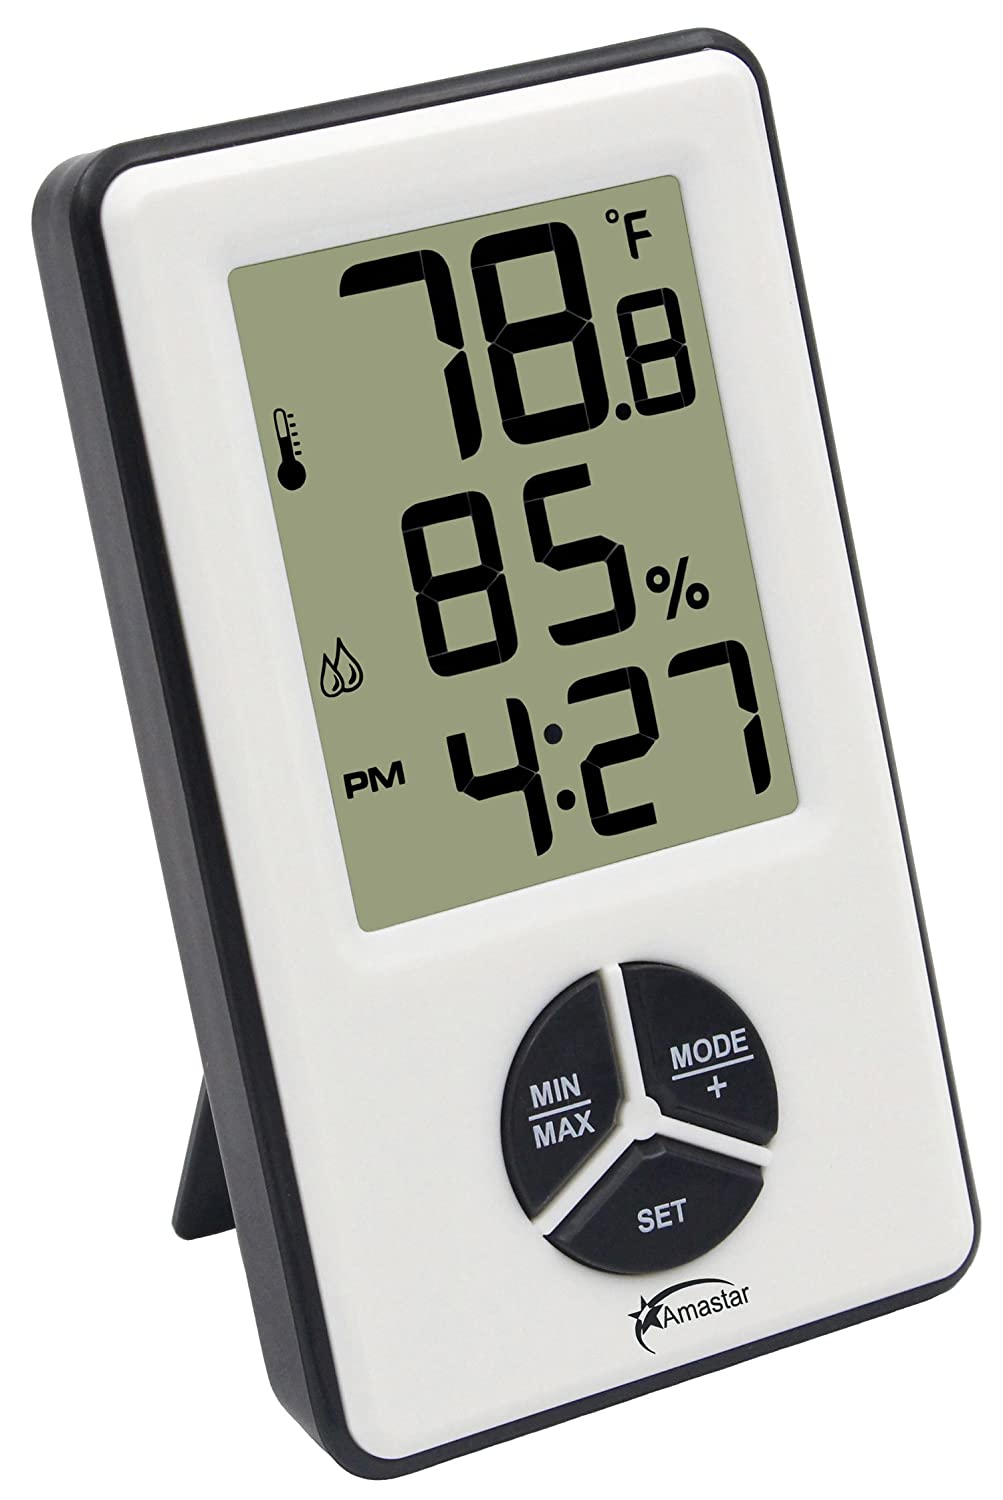 Amastar A0412 Indoor Hygrometer Thermometer Clock Portable Digital Temperature Humidity Monitor with Time Alarm Amastar Trading